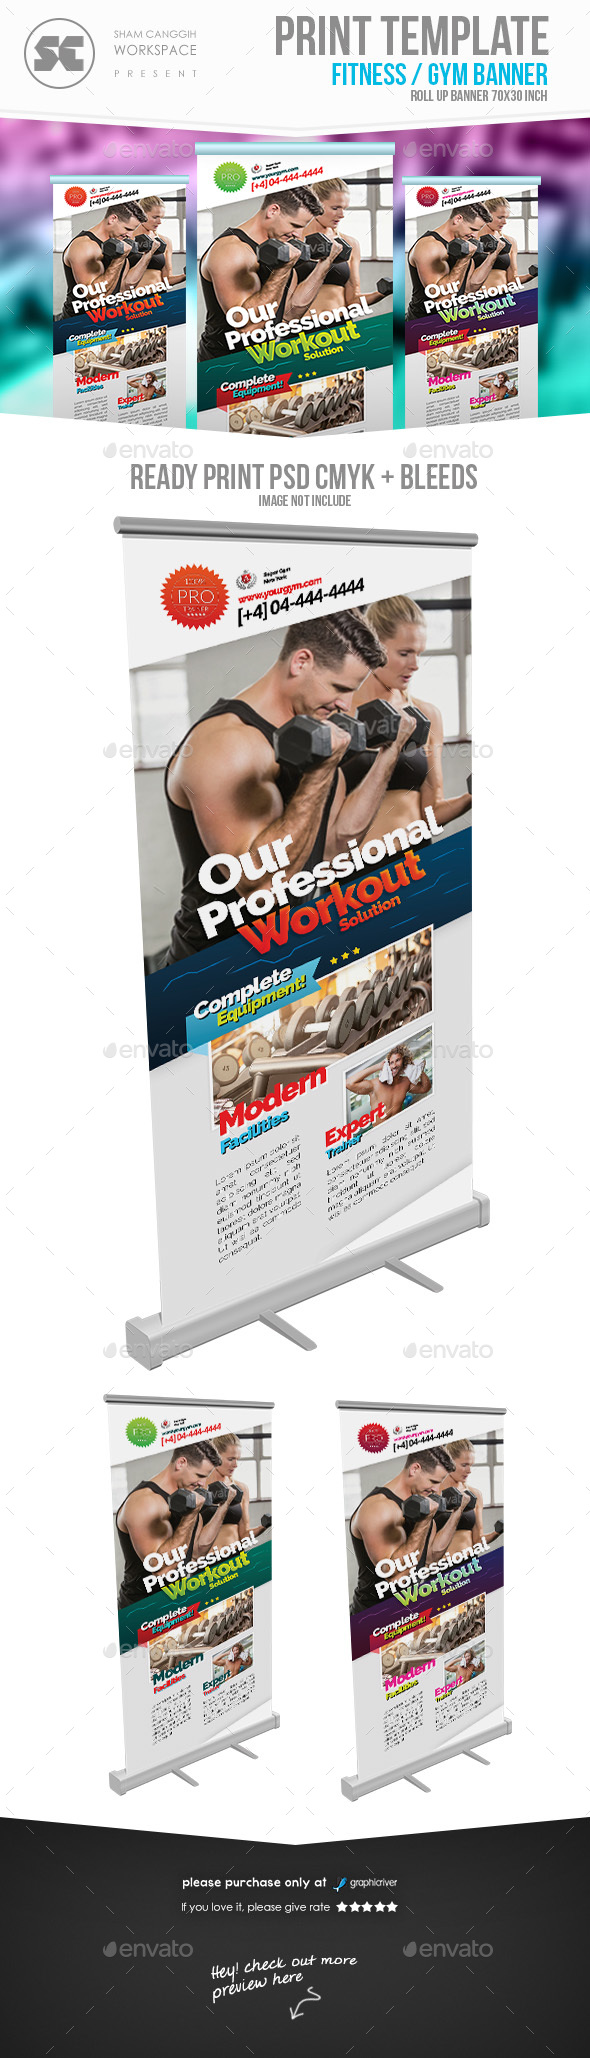 Fitness Gym Banner - Signage Print Templates